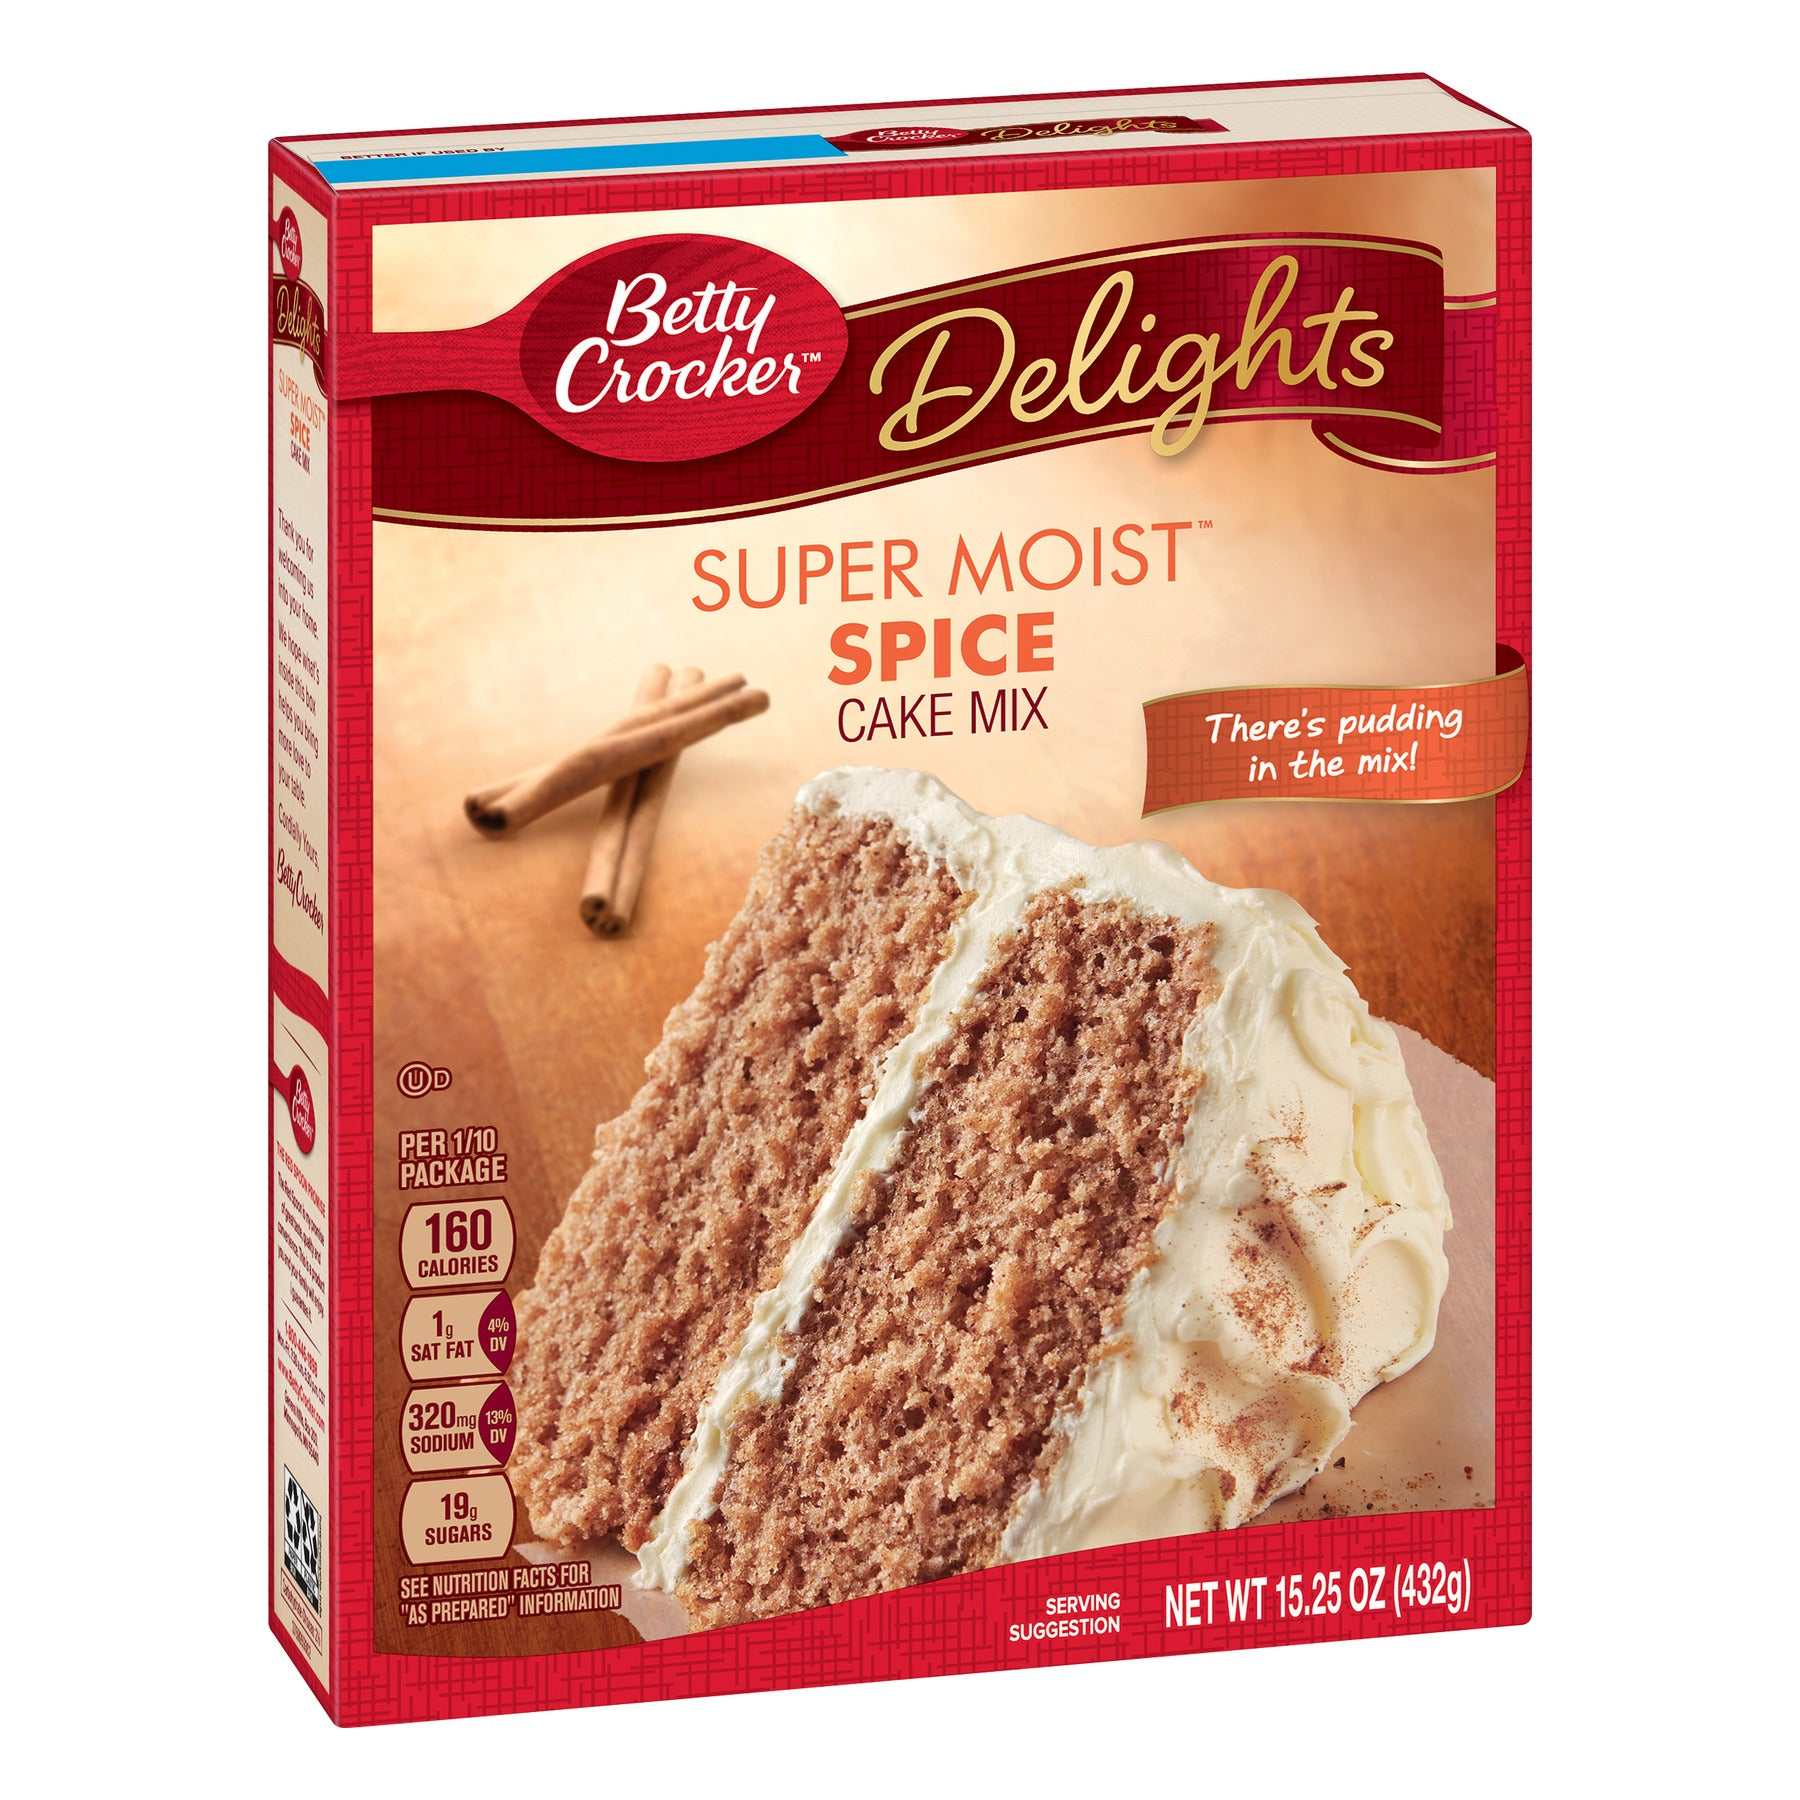 Betty Crocker Super Moist Spice Cake Mix (432g) - A Taste of the States